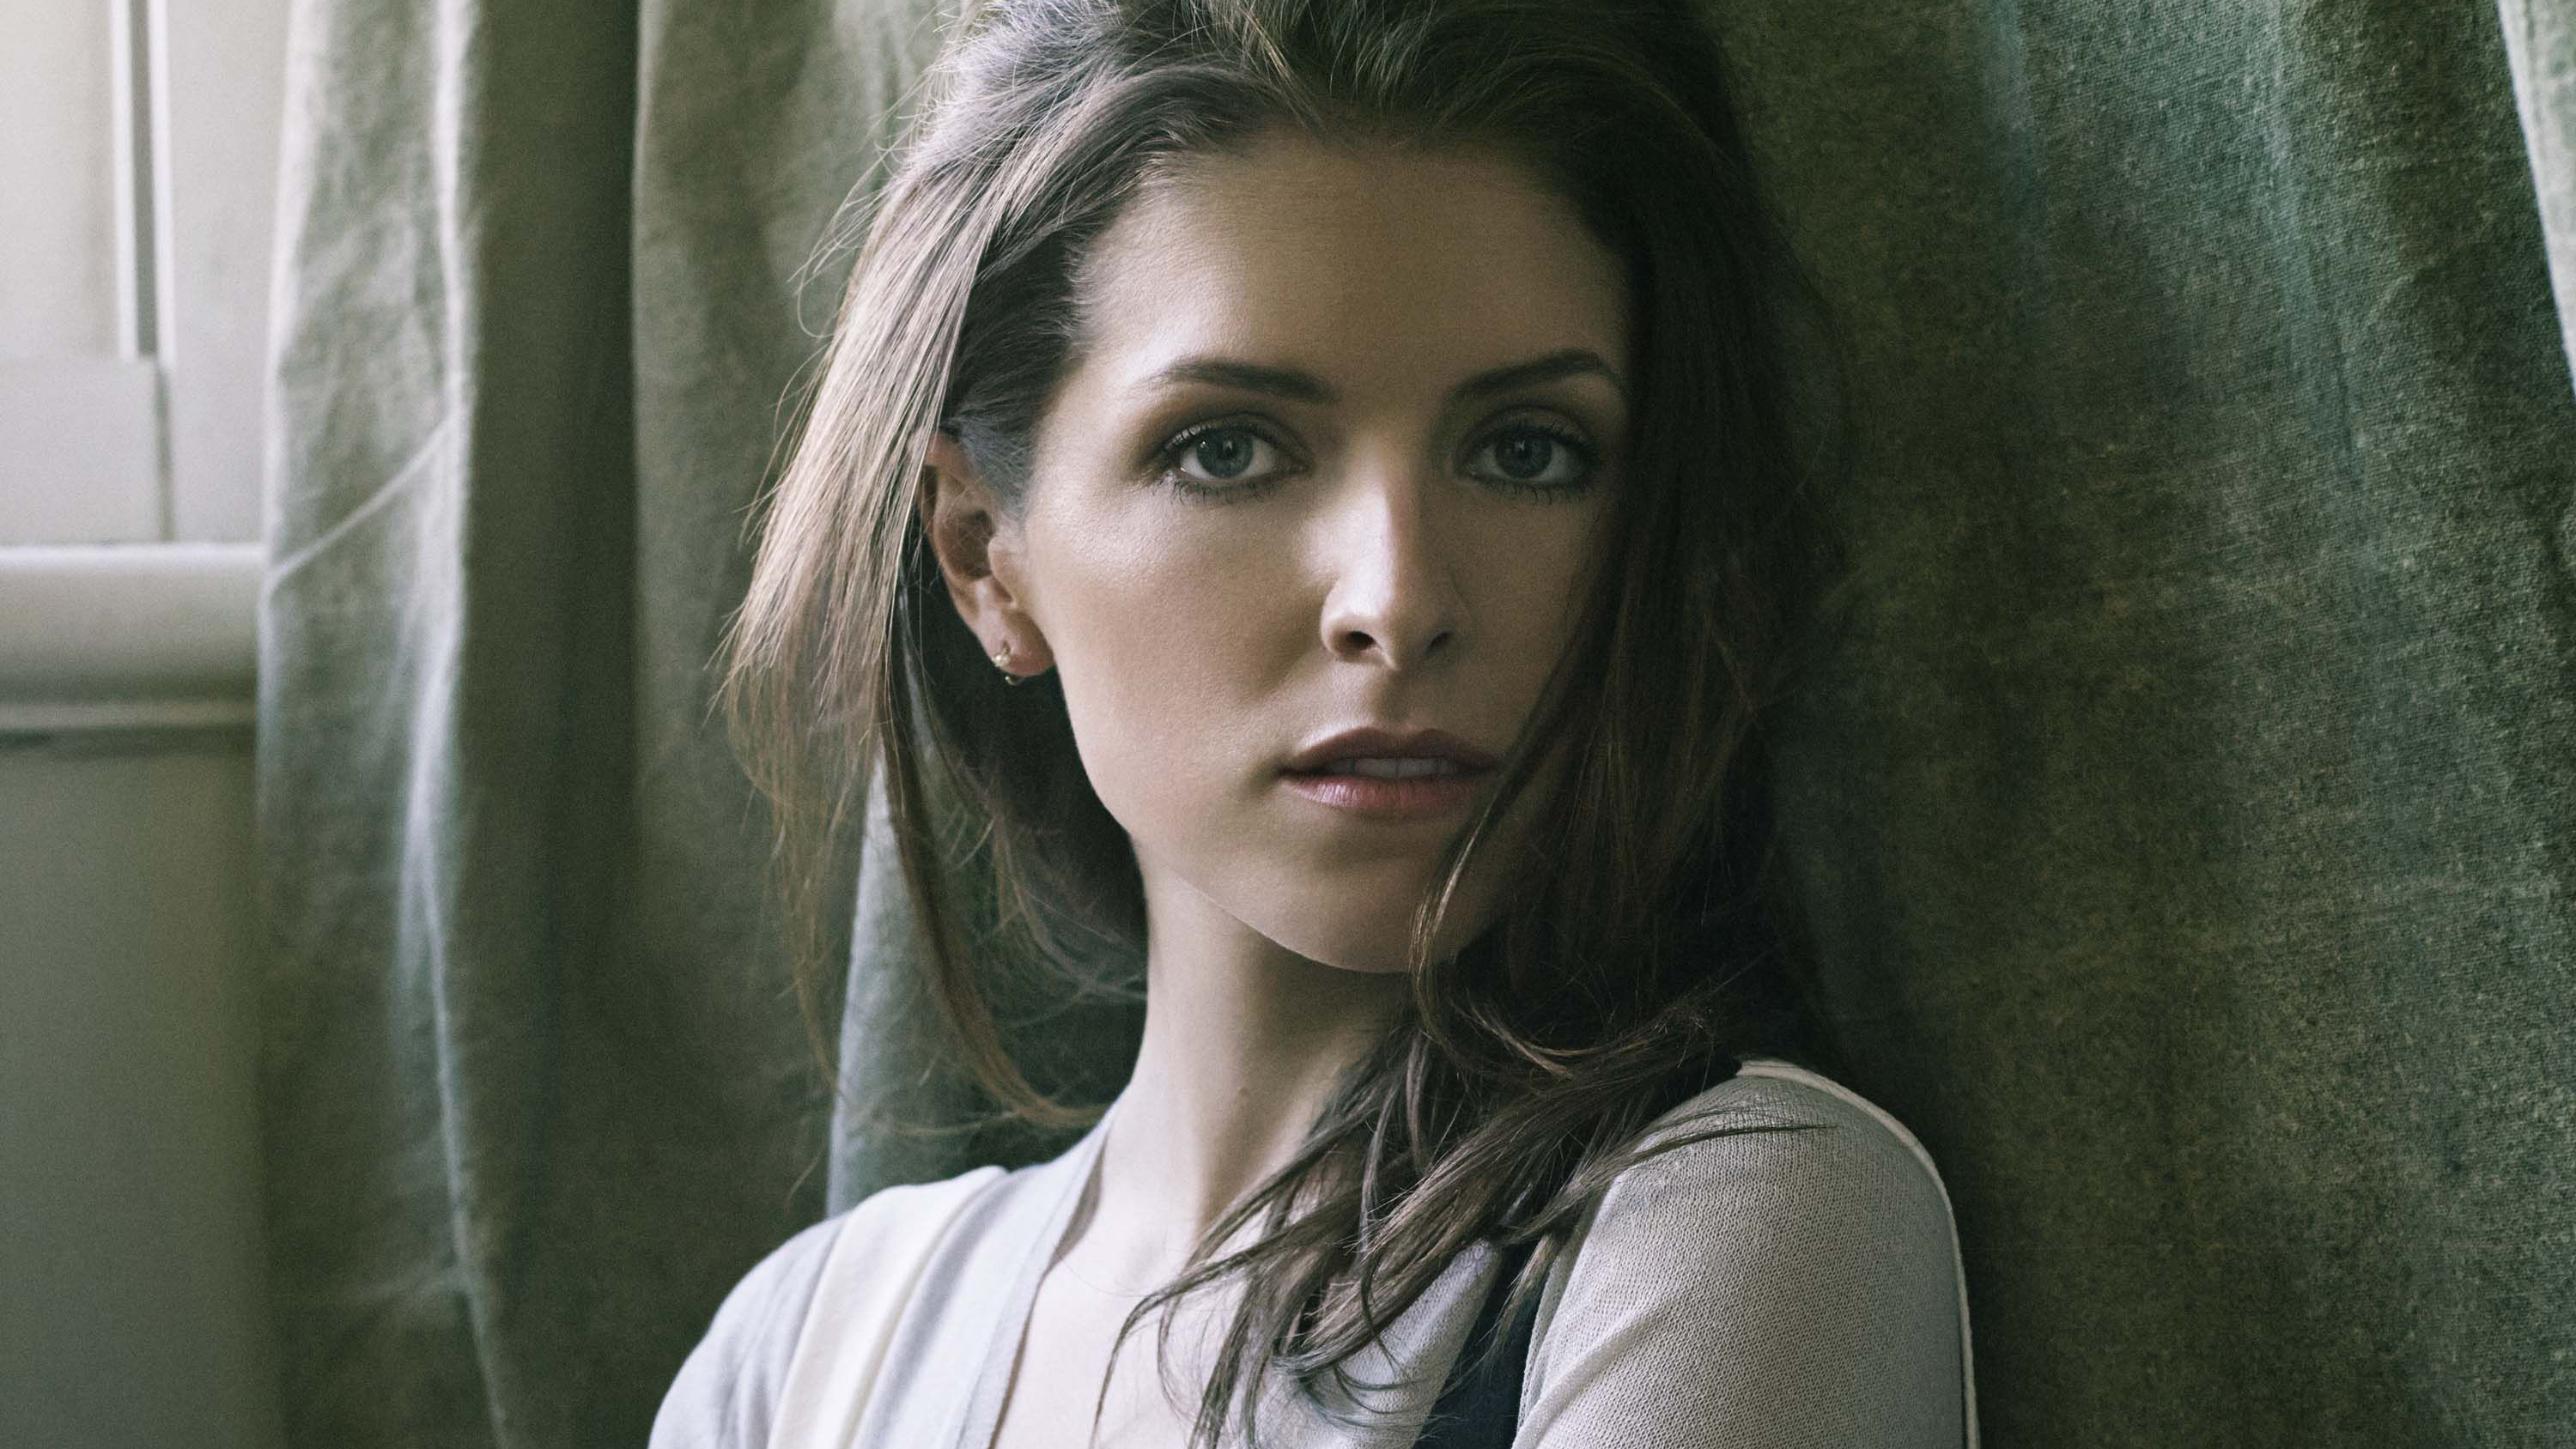 Anna Kendrick 2019 Hd Celebrities 4k Wallpapers Images Backgrounds Photos And Pictures